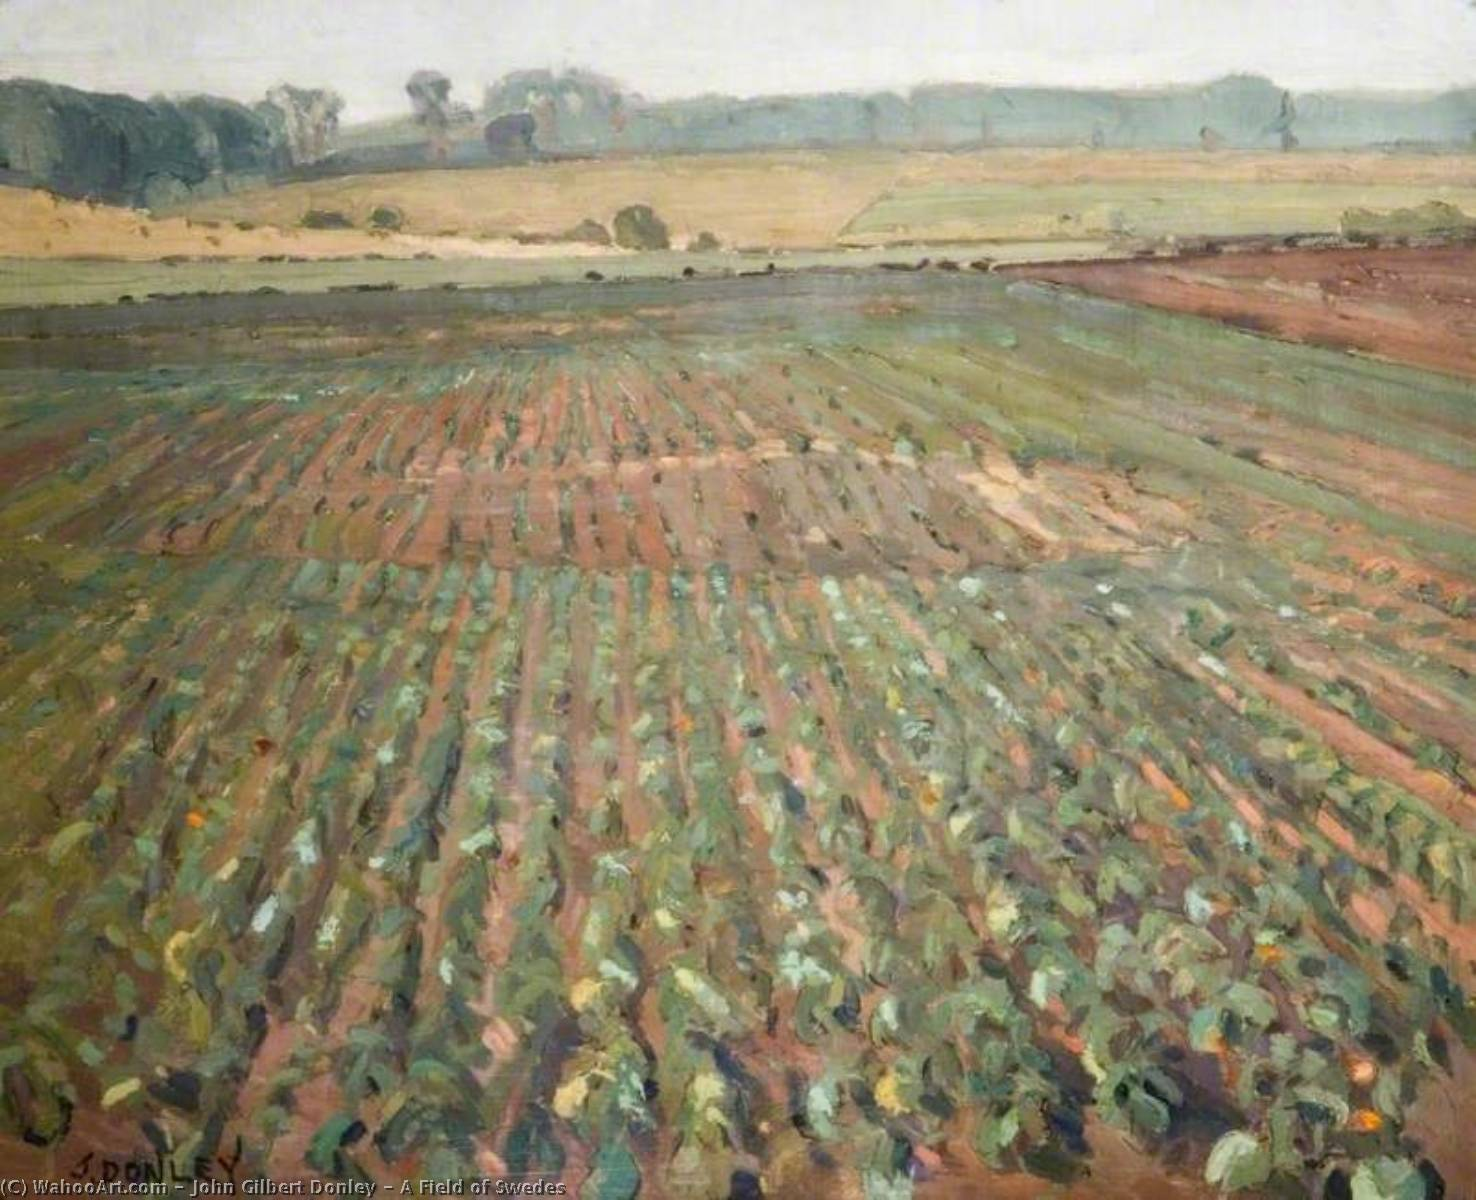 A Field of Swedes, Oil On Canvas by John Gilbert Donley